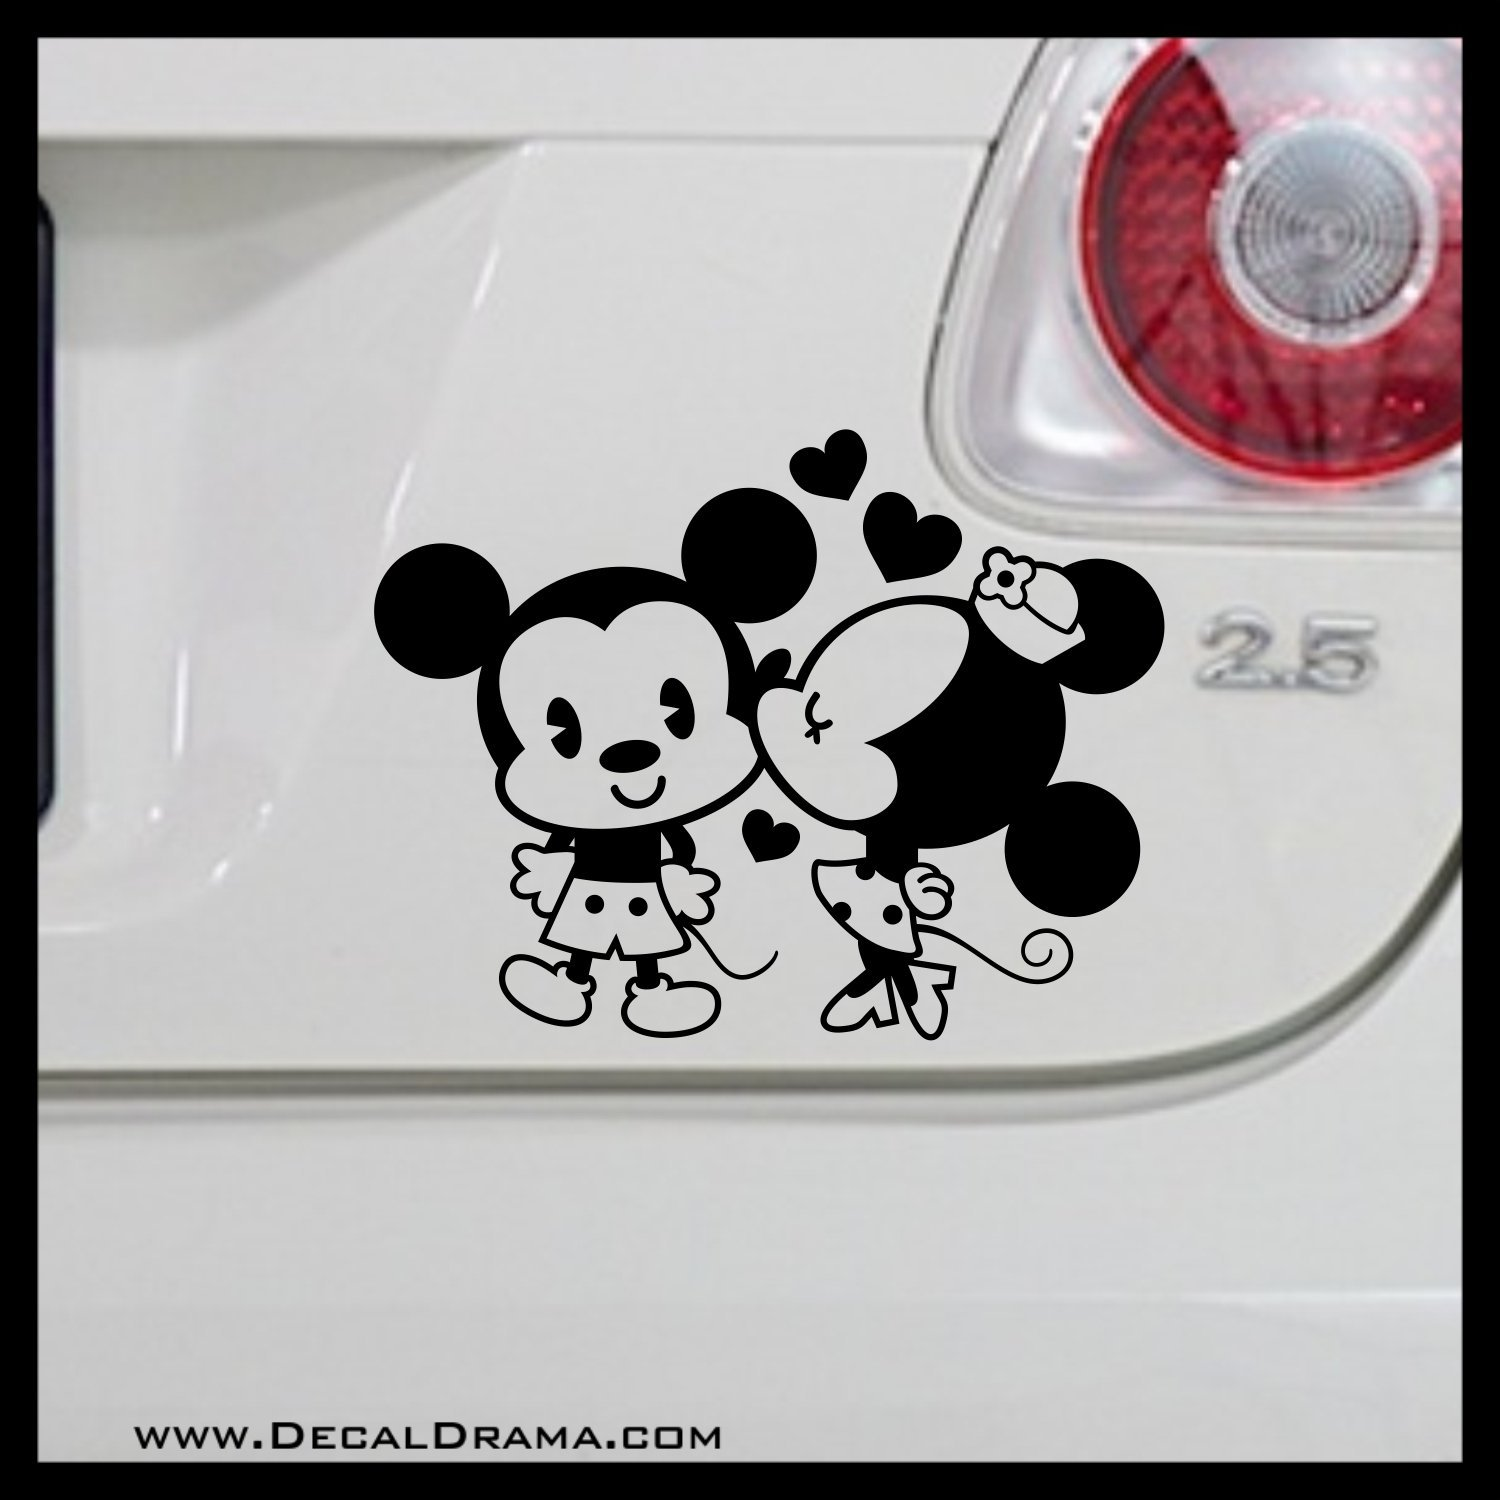 Kissing minnie mouse fan art medium vinyl decal kissing mickey mouse minnie mouse disney pie eyed mickey cars trucks vans laptops windows cups tumblers